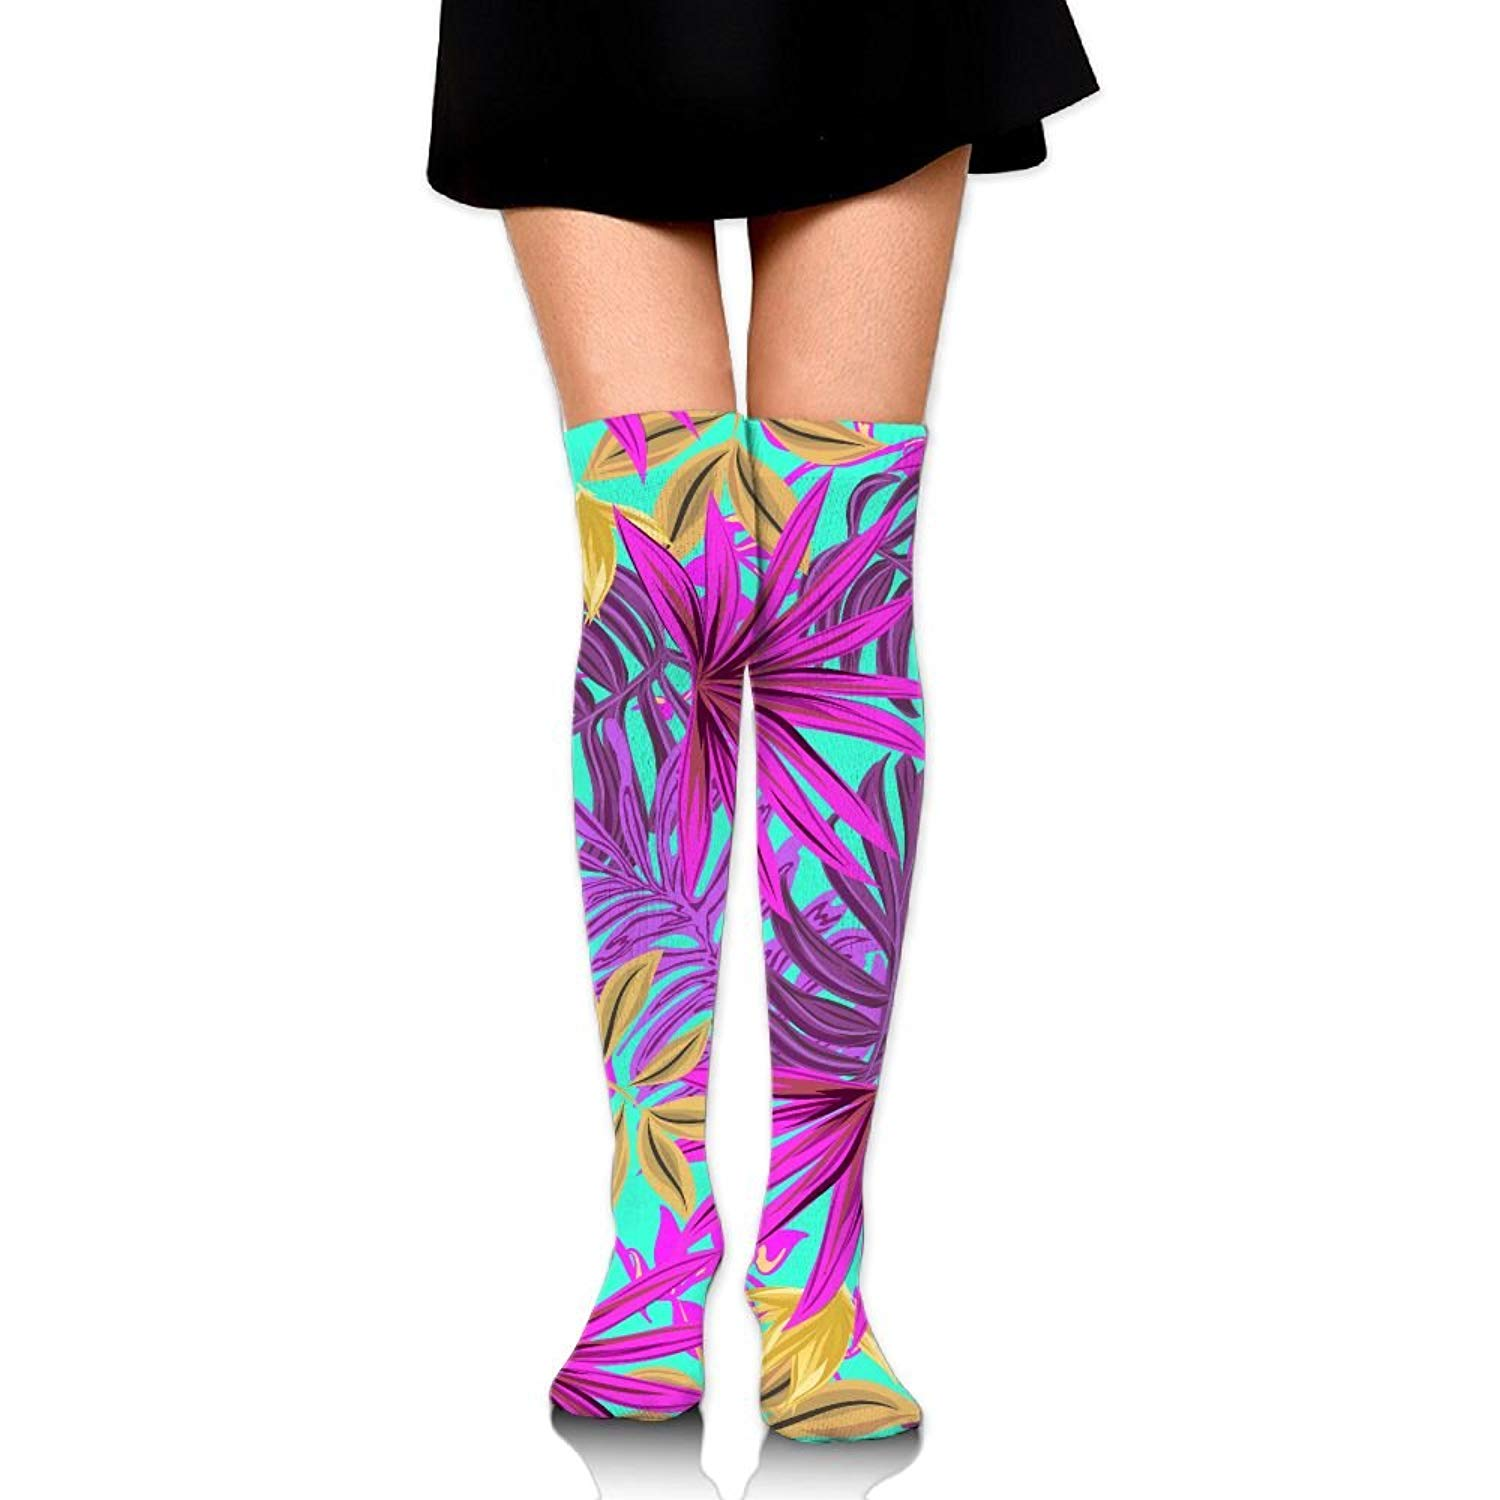 8fdb8684fff Get Quotations · Leaves Art Bright Pink Green Ankle Stockings Over The Knee  Sexy Womens Sports Athletic Soccer Socks